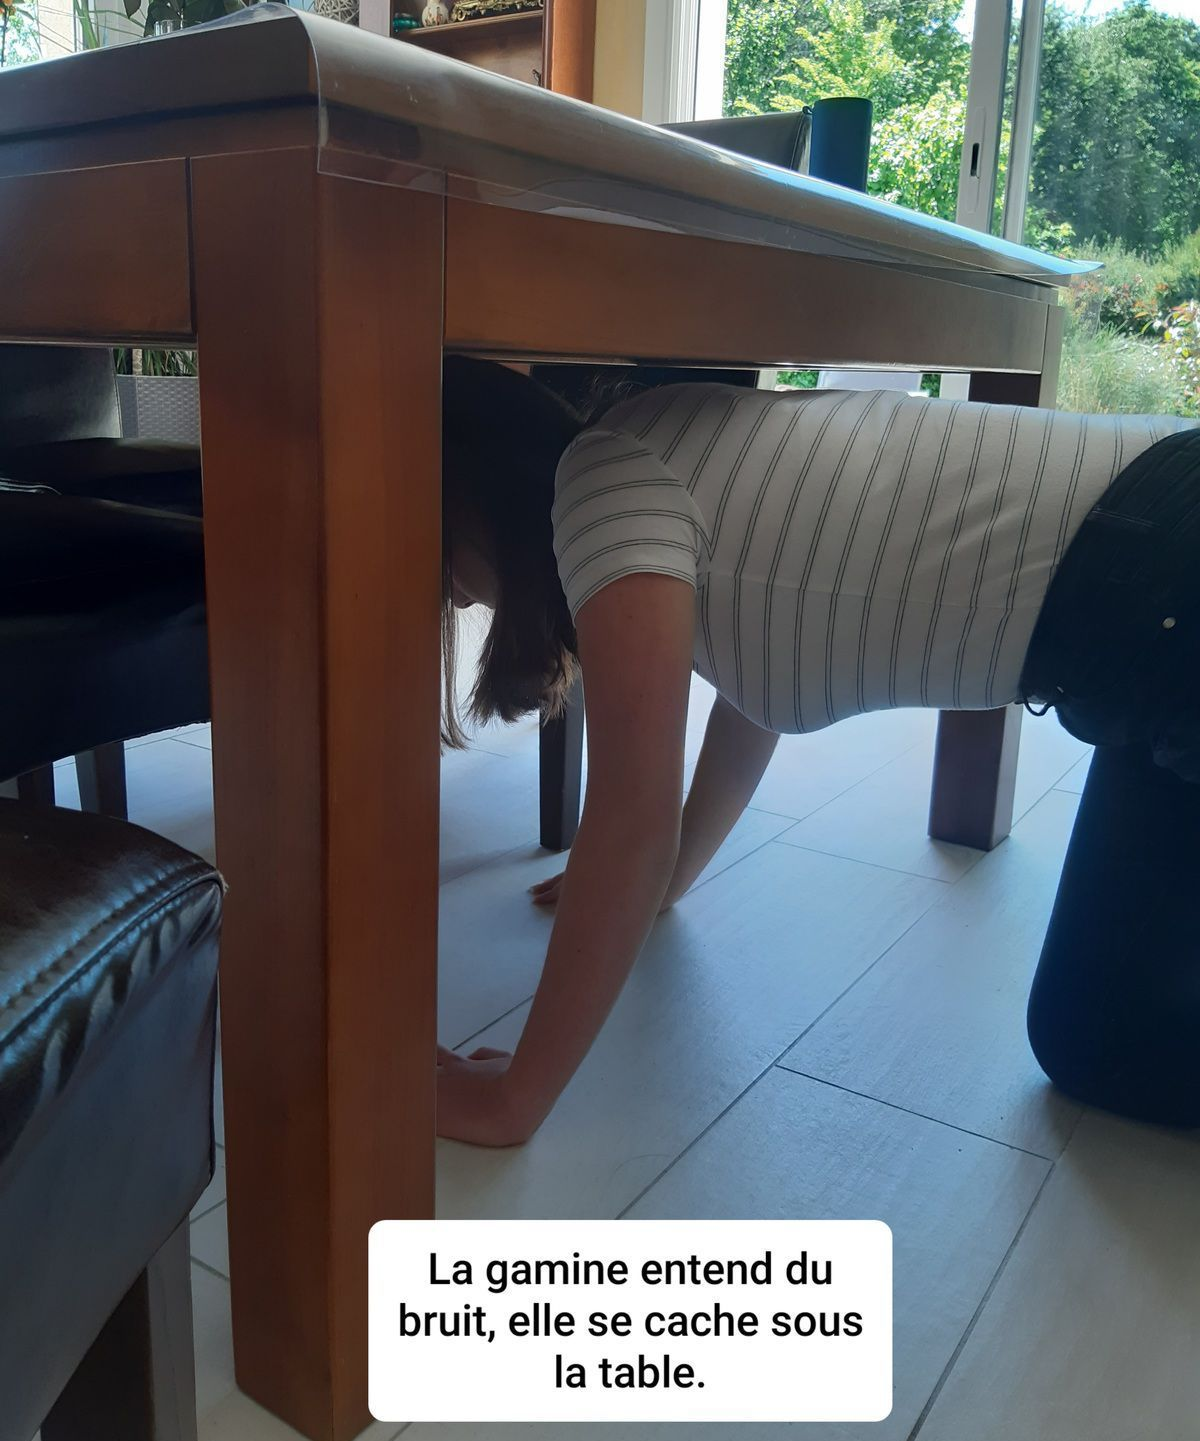 La gamine sous la table